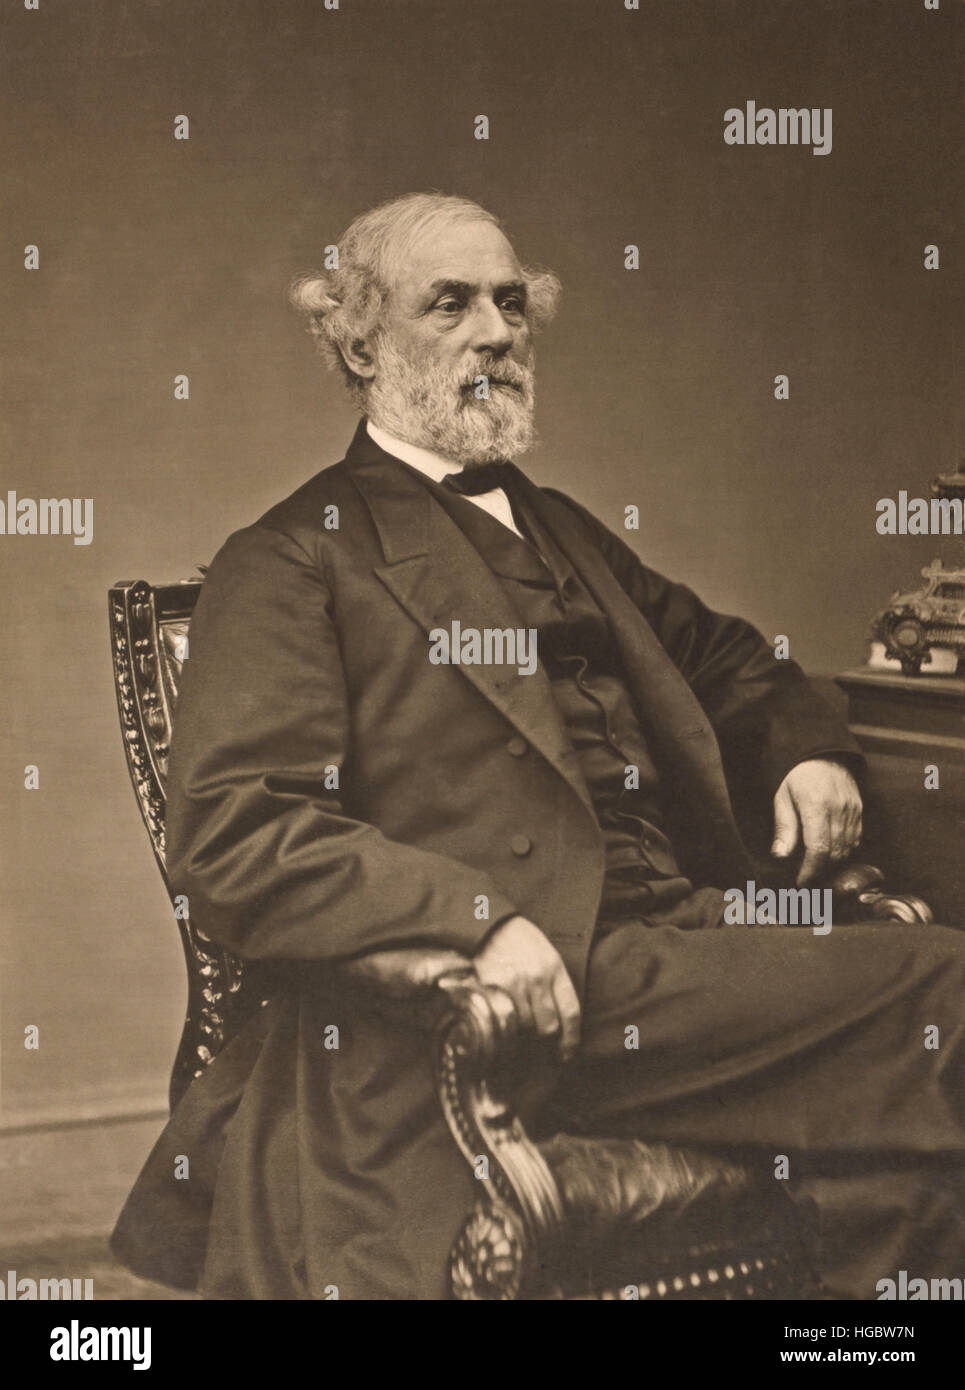 Robert Edward Lee portrait, circa 1869. - Stock Image